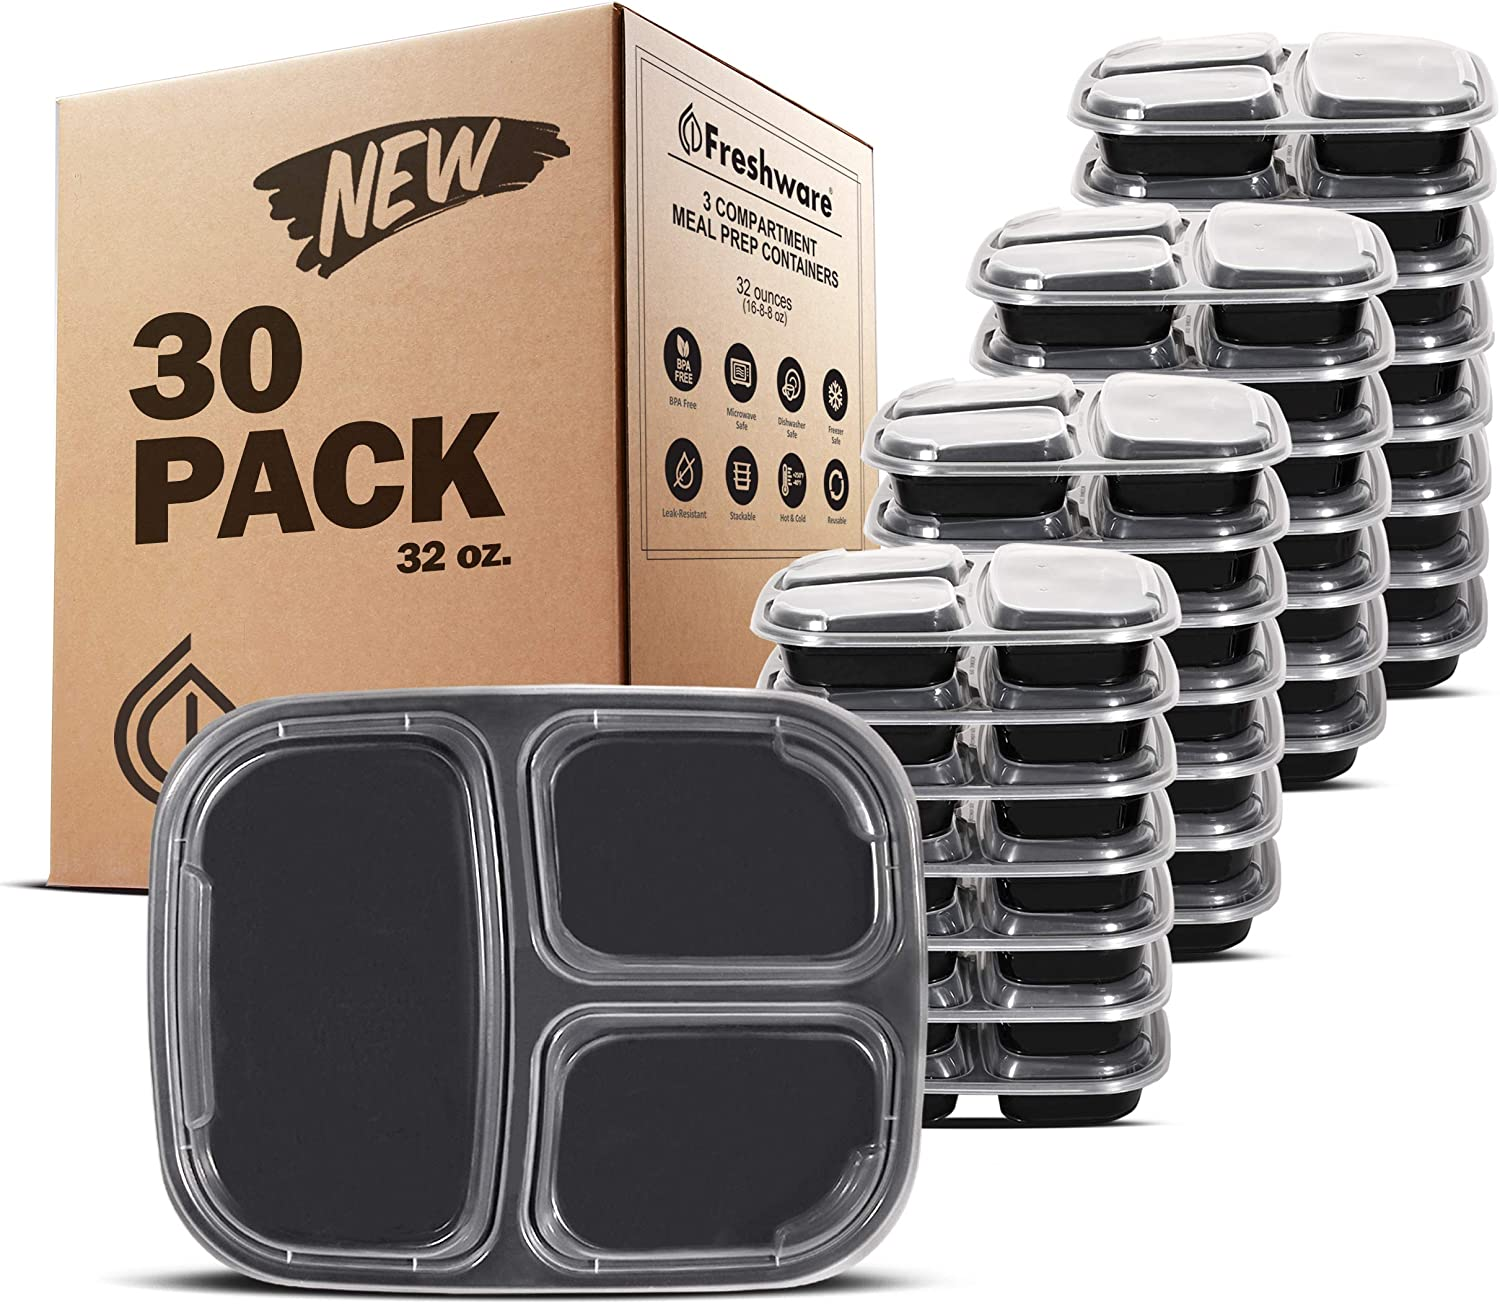 Freshware Meal Prep Containers [30 Pack] 3 Compartment Bento Box, Food Storage Containers with Lids | Stackable | Microwave/Dishwasher/Freezer Safe, Portion Control (32 Ounce)